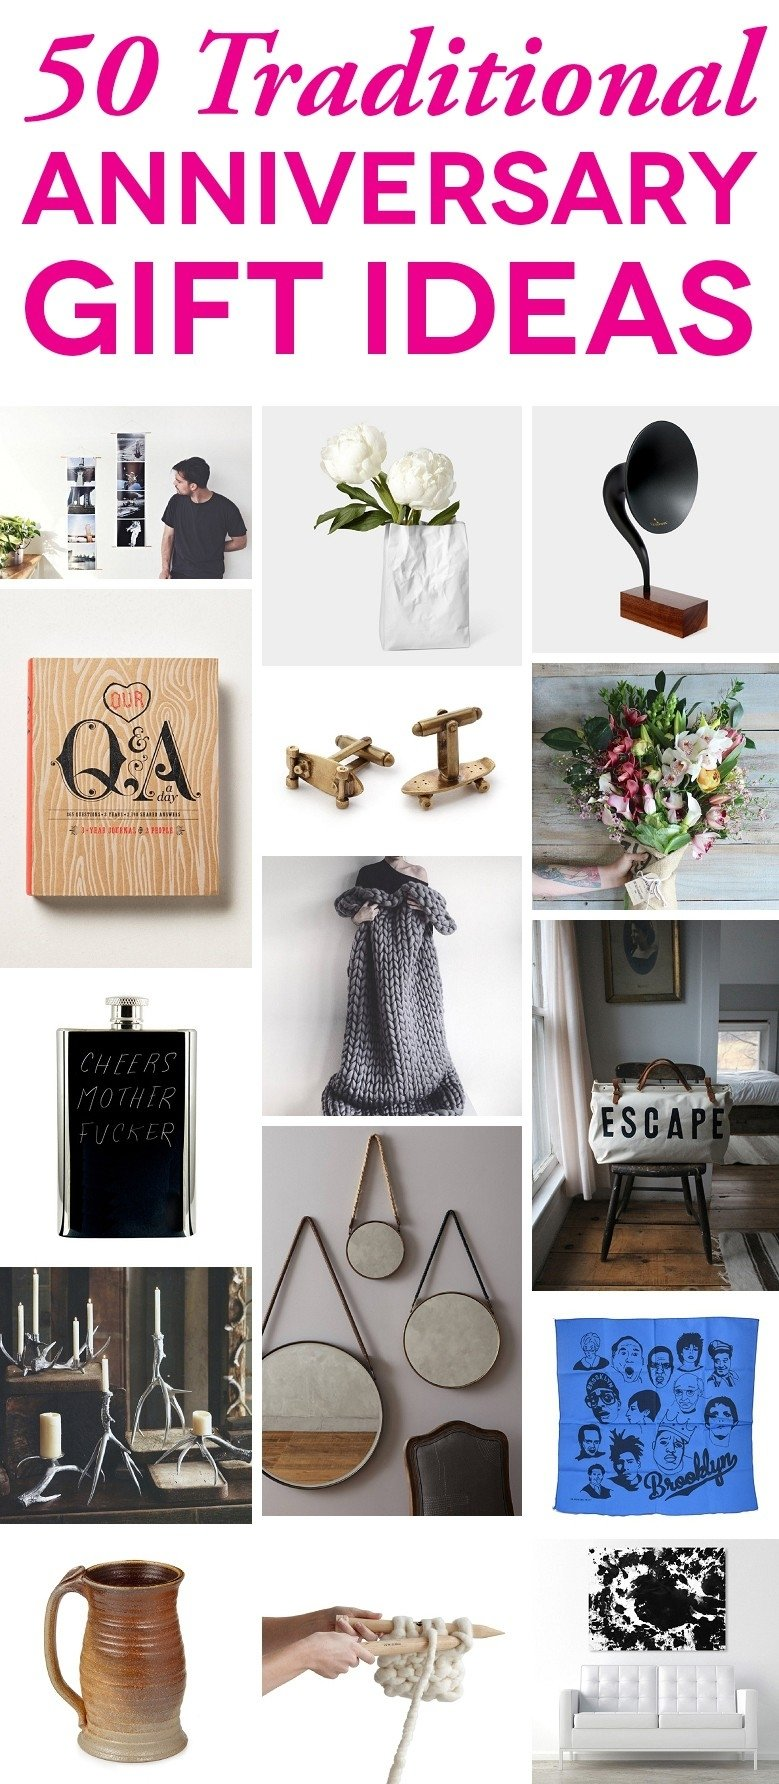 10 Elegant Good Ideas For Anniversary Gifts wedding anniversary gift suggestions beautiful traditional 2020